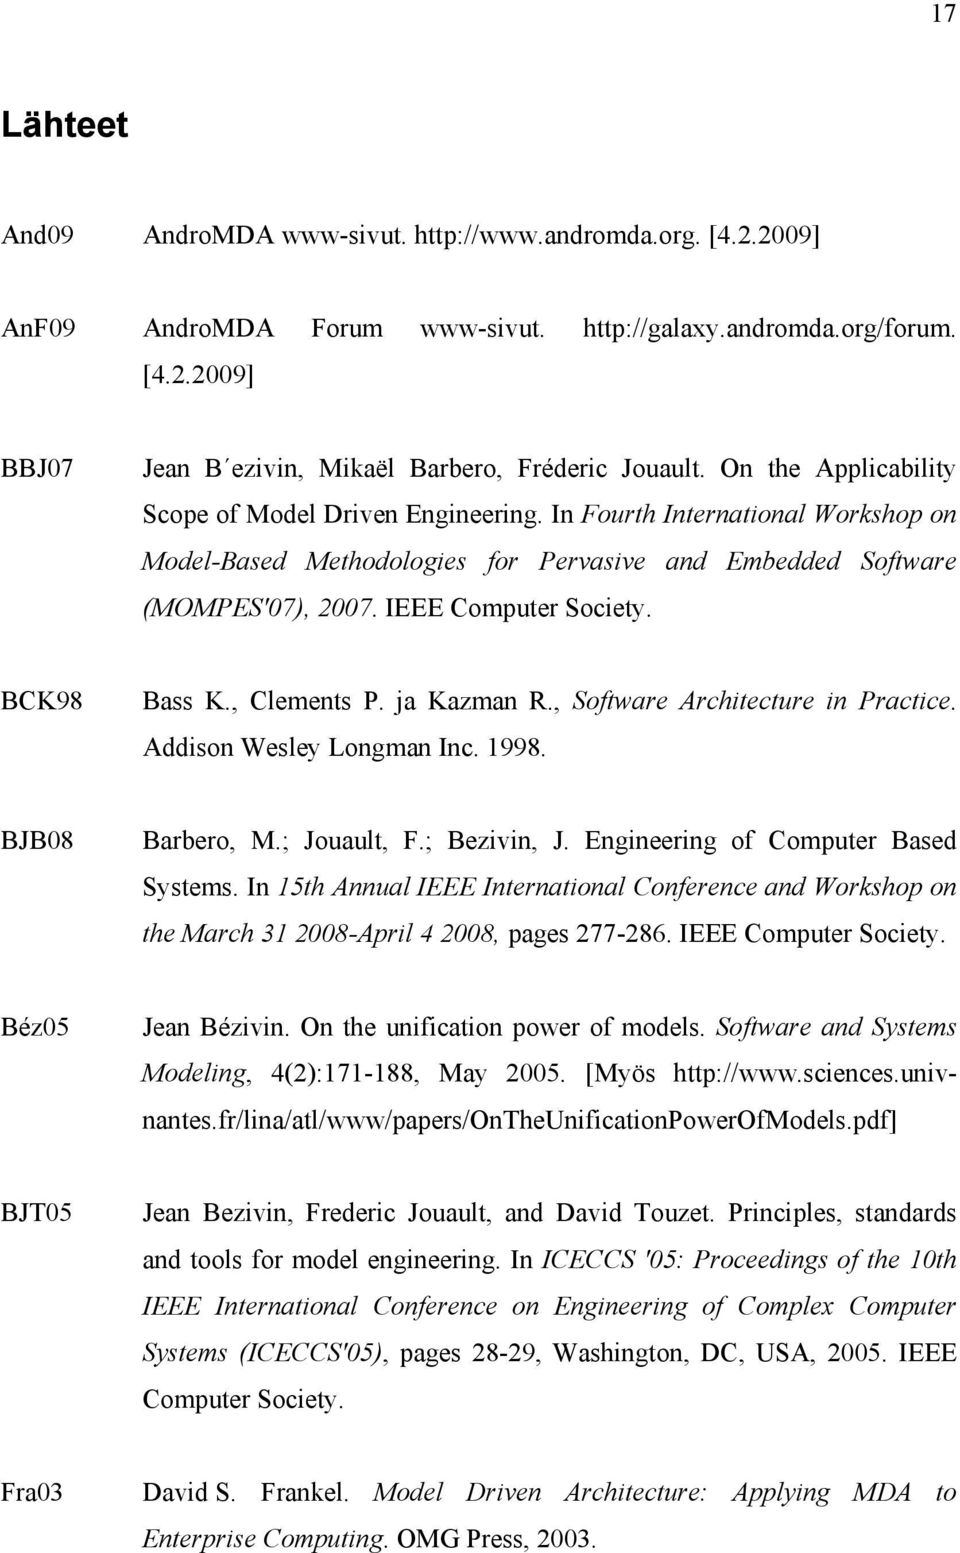 BCK98 Bass K., Clements P. ja Kazman R., Software Architecture in Practice. Addison Wesley Longman Inc. 1998. BJB08 Barbero, M.; Jouault, F.; Bezivin, J. Engineering of Computer Based Systems.